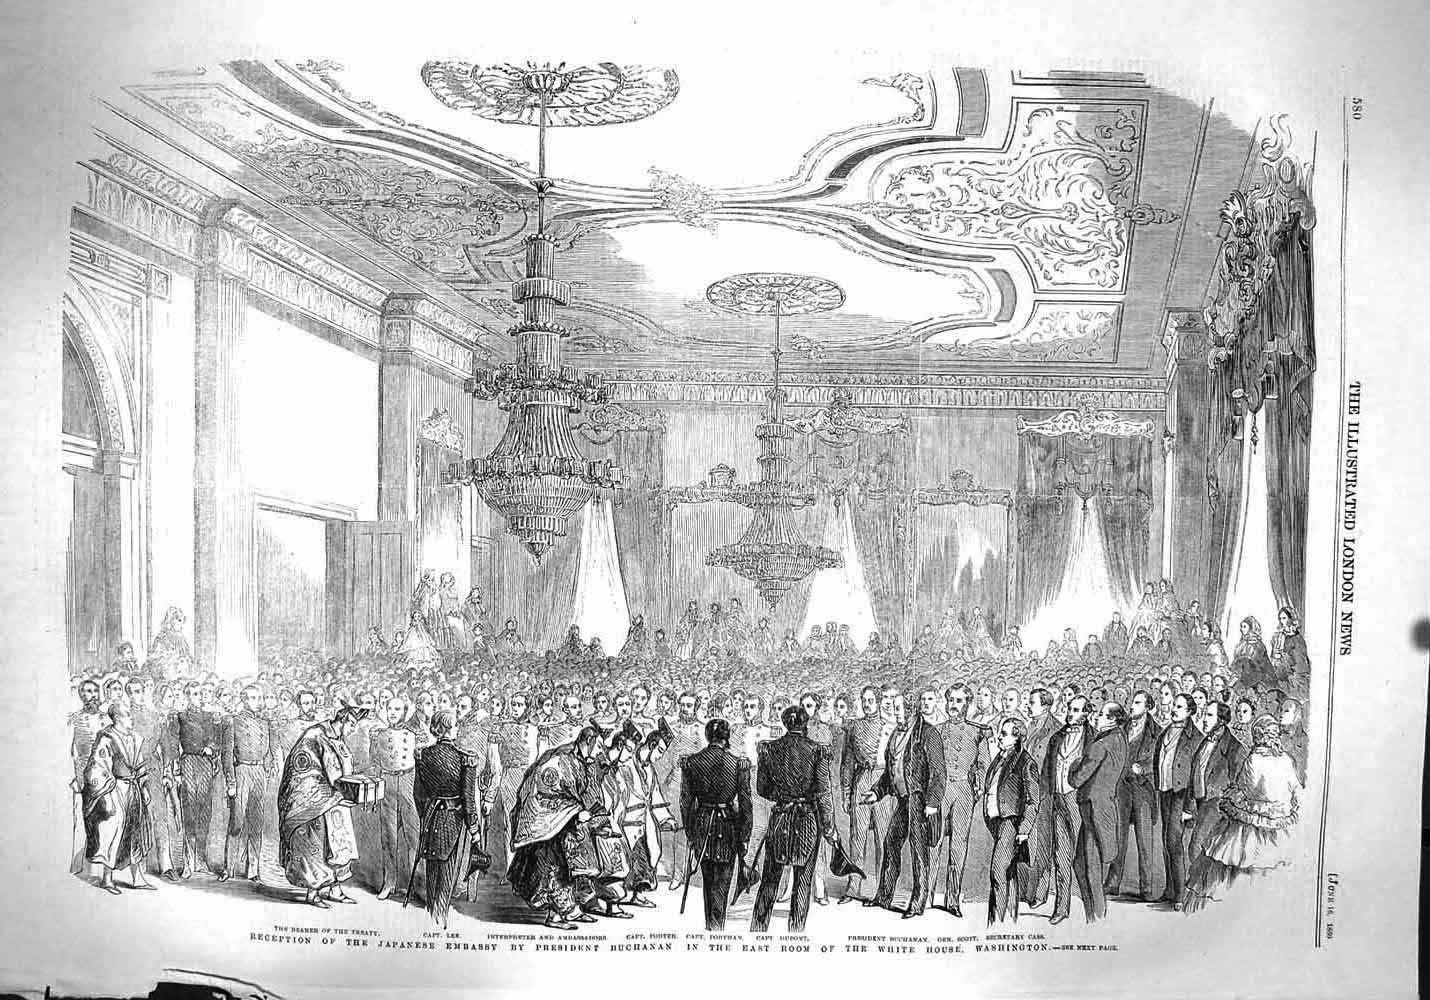 President Buchanan greets the Japanese Embassy in the East Room of the White House